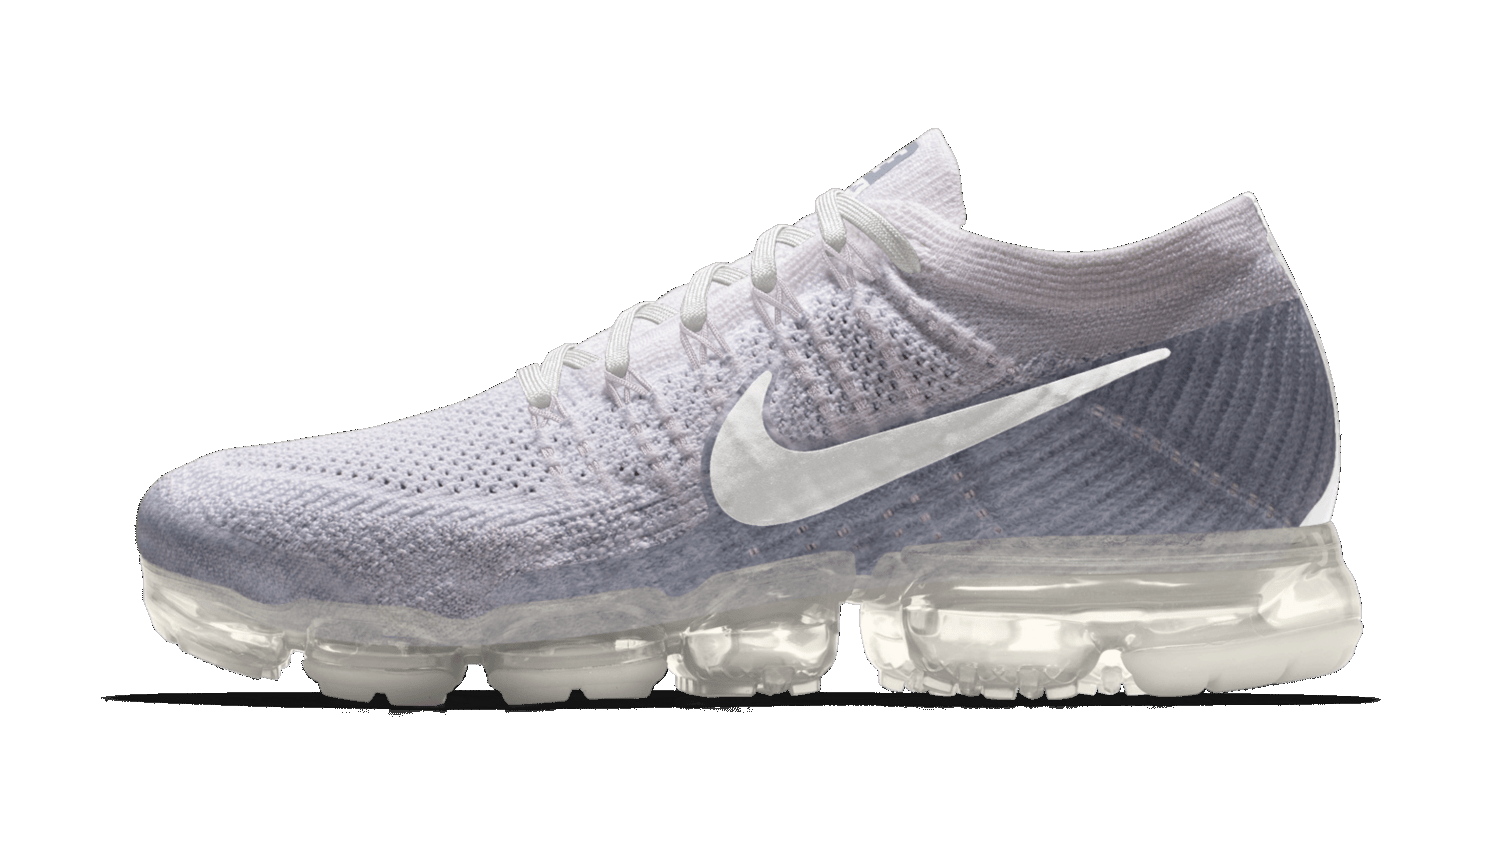 Nikeid Air Vapormax White Clear